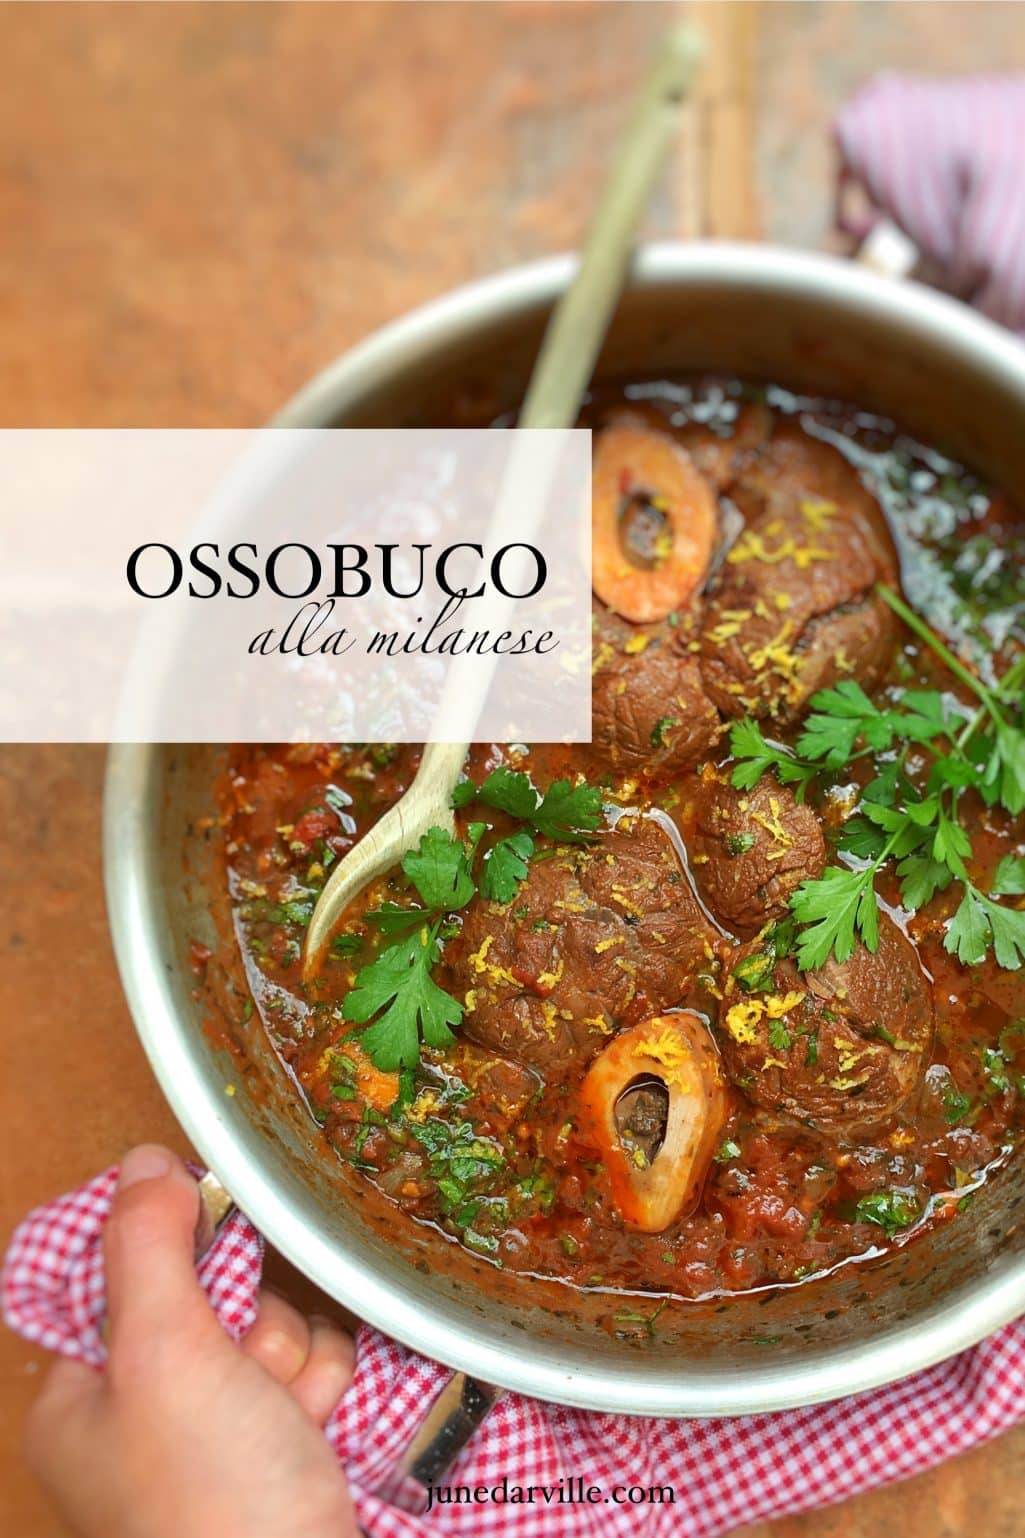 Traditional ossobuco alla Milanese! Or classic braised veal shanks in a flavorful tomato wine sauce with zesty gremolata...